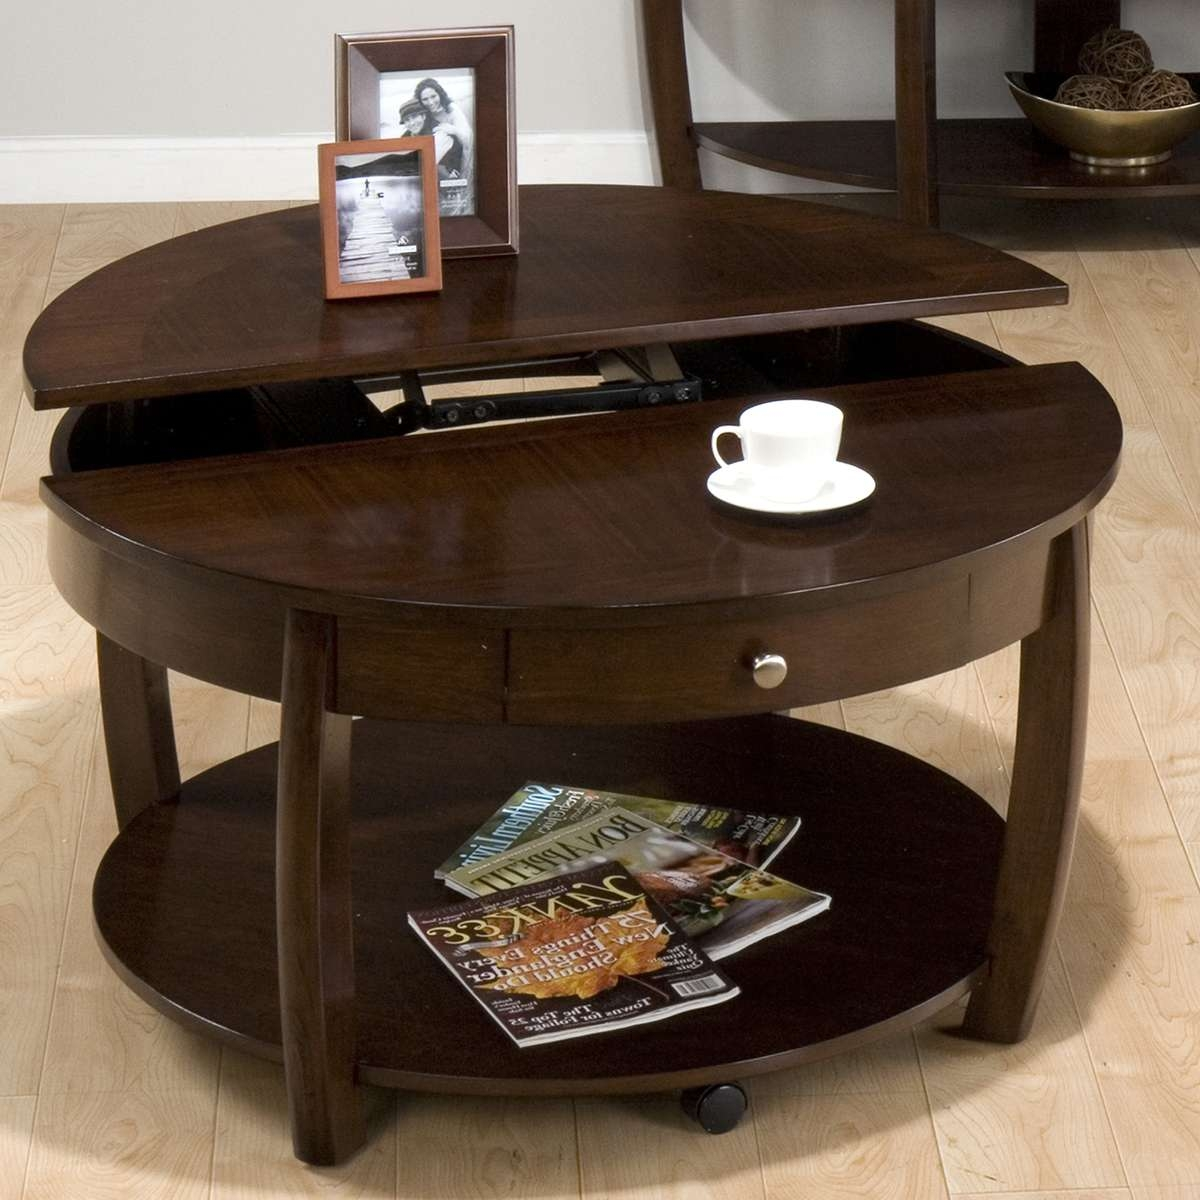 Fashionable Raisable Coffee Tables With Amazing Lift Coffee Tables (View 11 of 20)